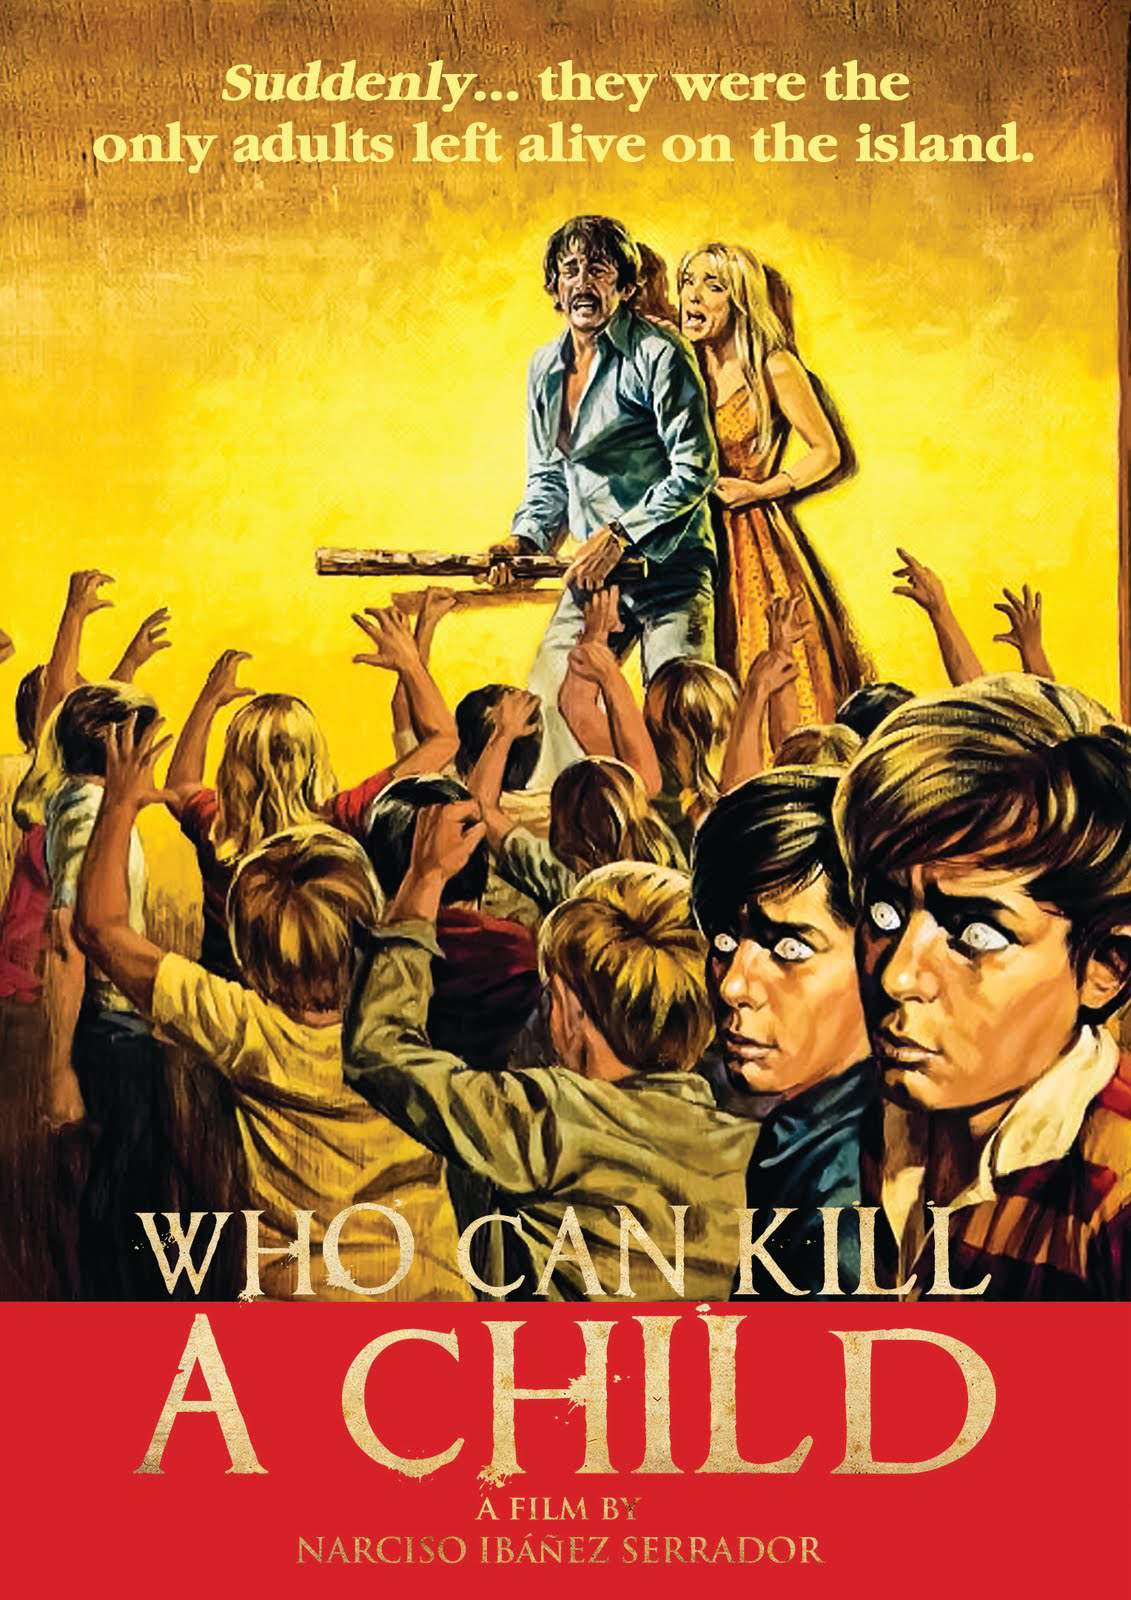 Who_Can_Kill_Poster_1402338557.jpg